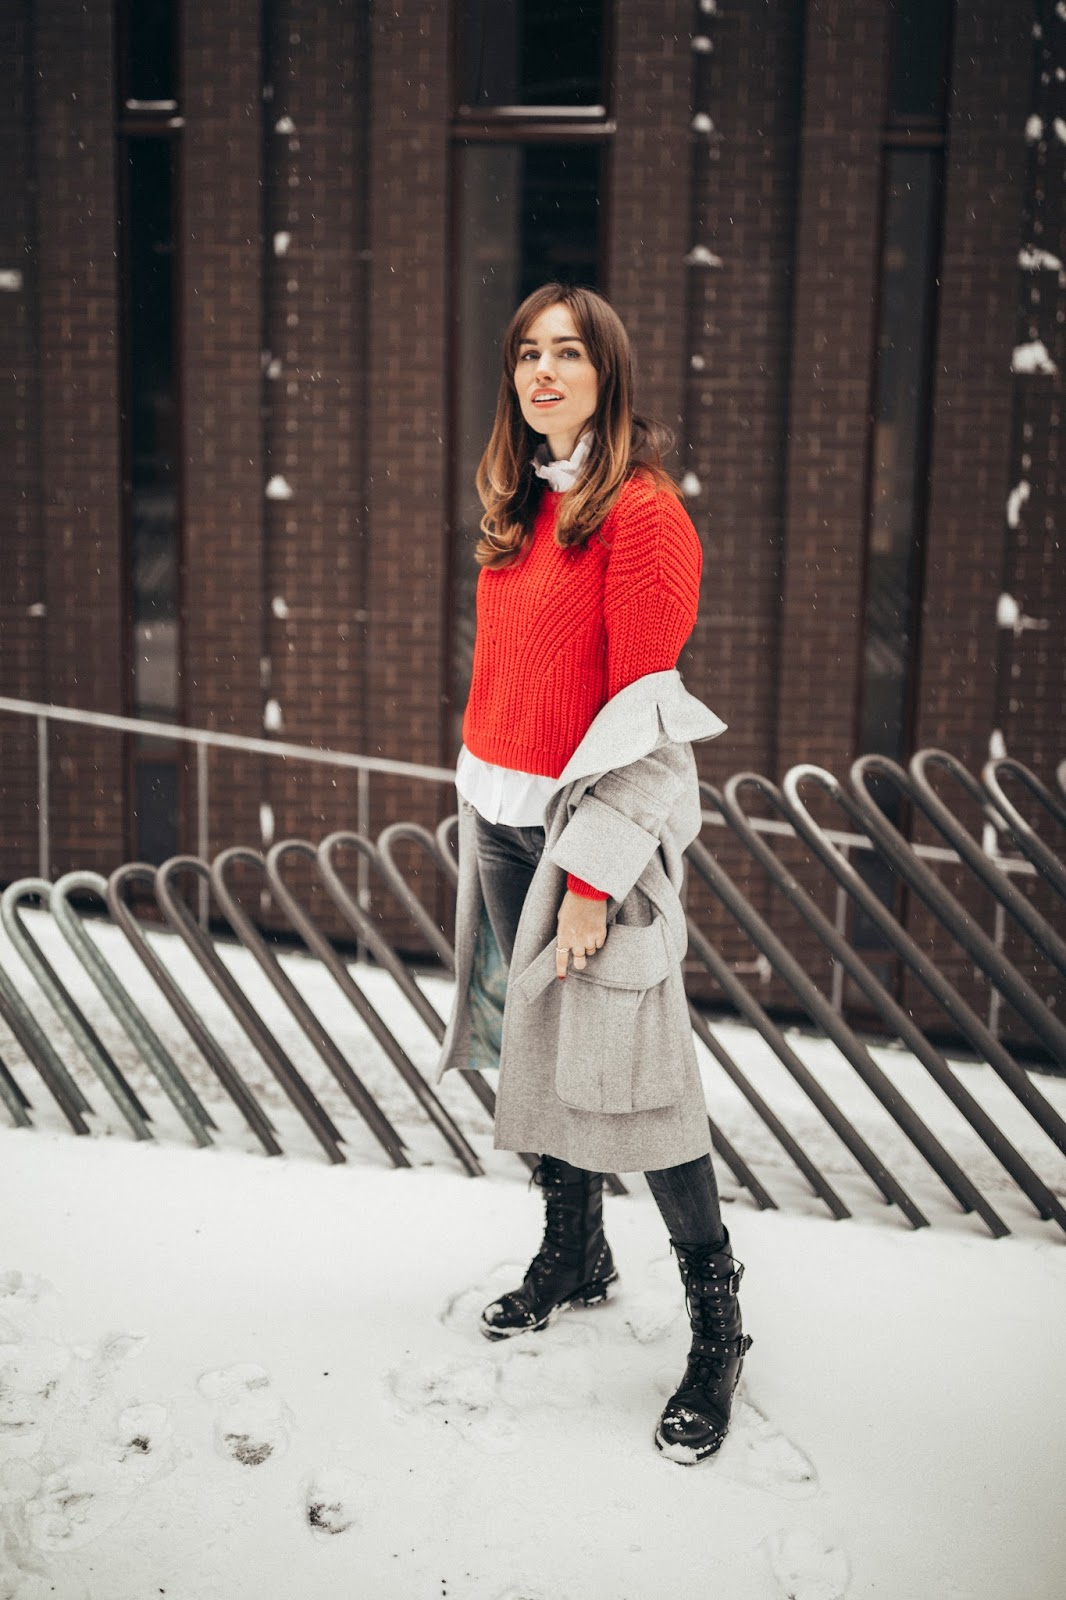 CASUAL OUTFIT IDEAS FOR VALENTINE'S DAY | Kristjaana